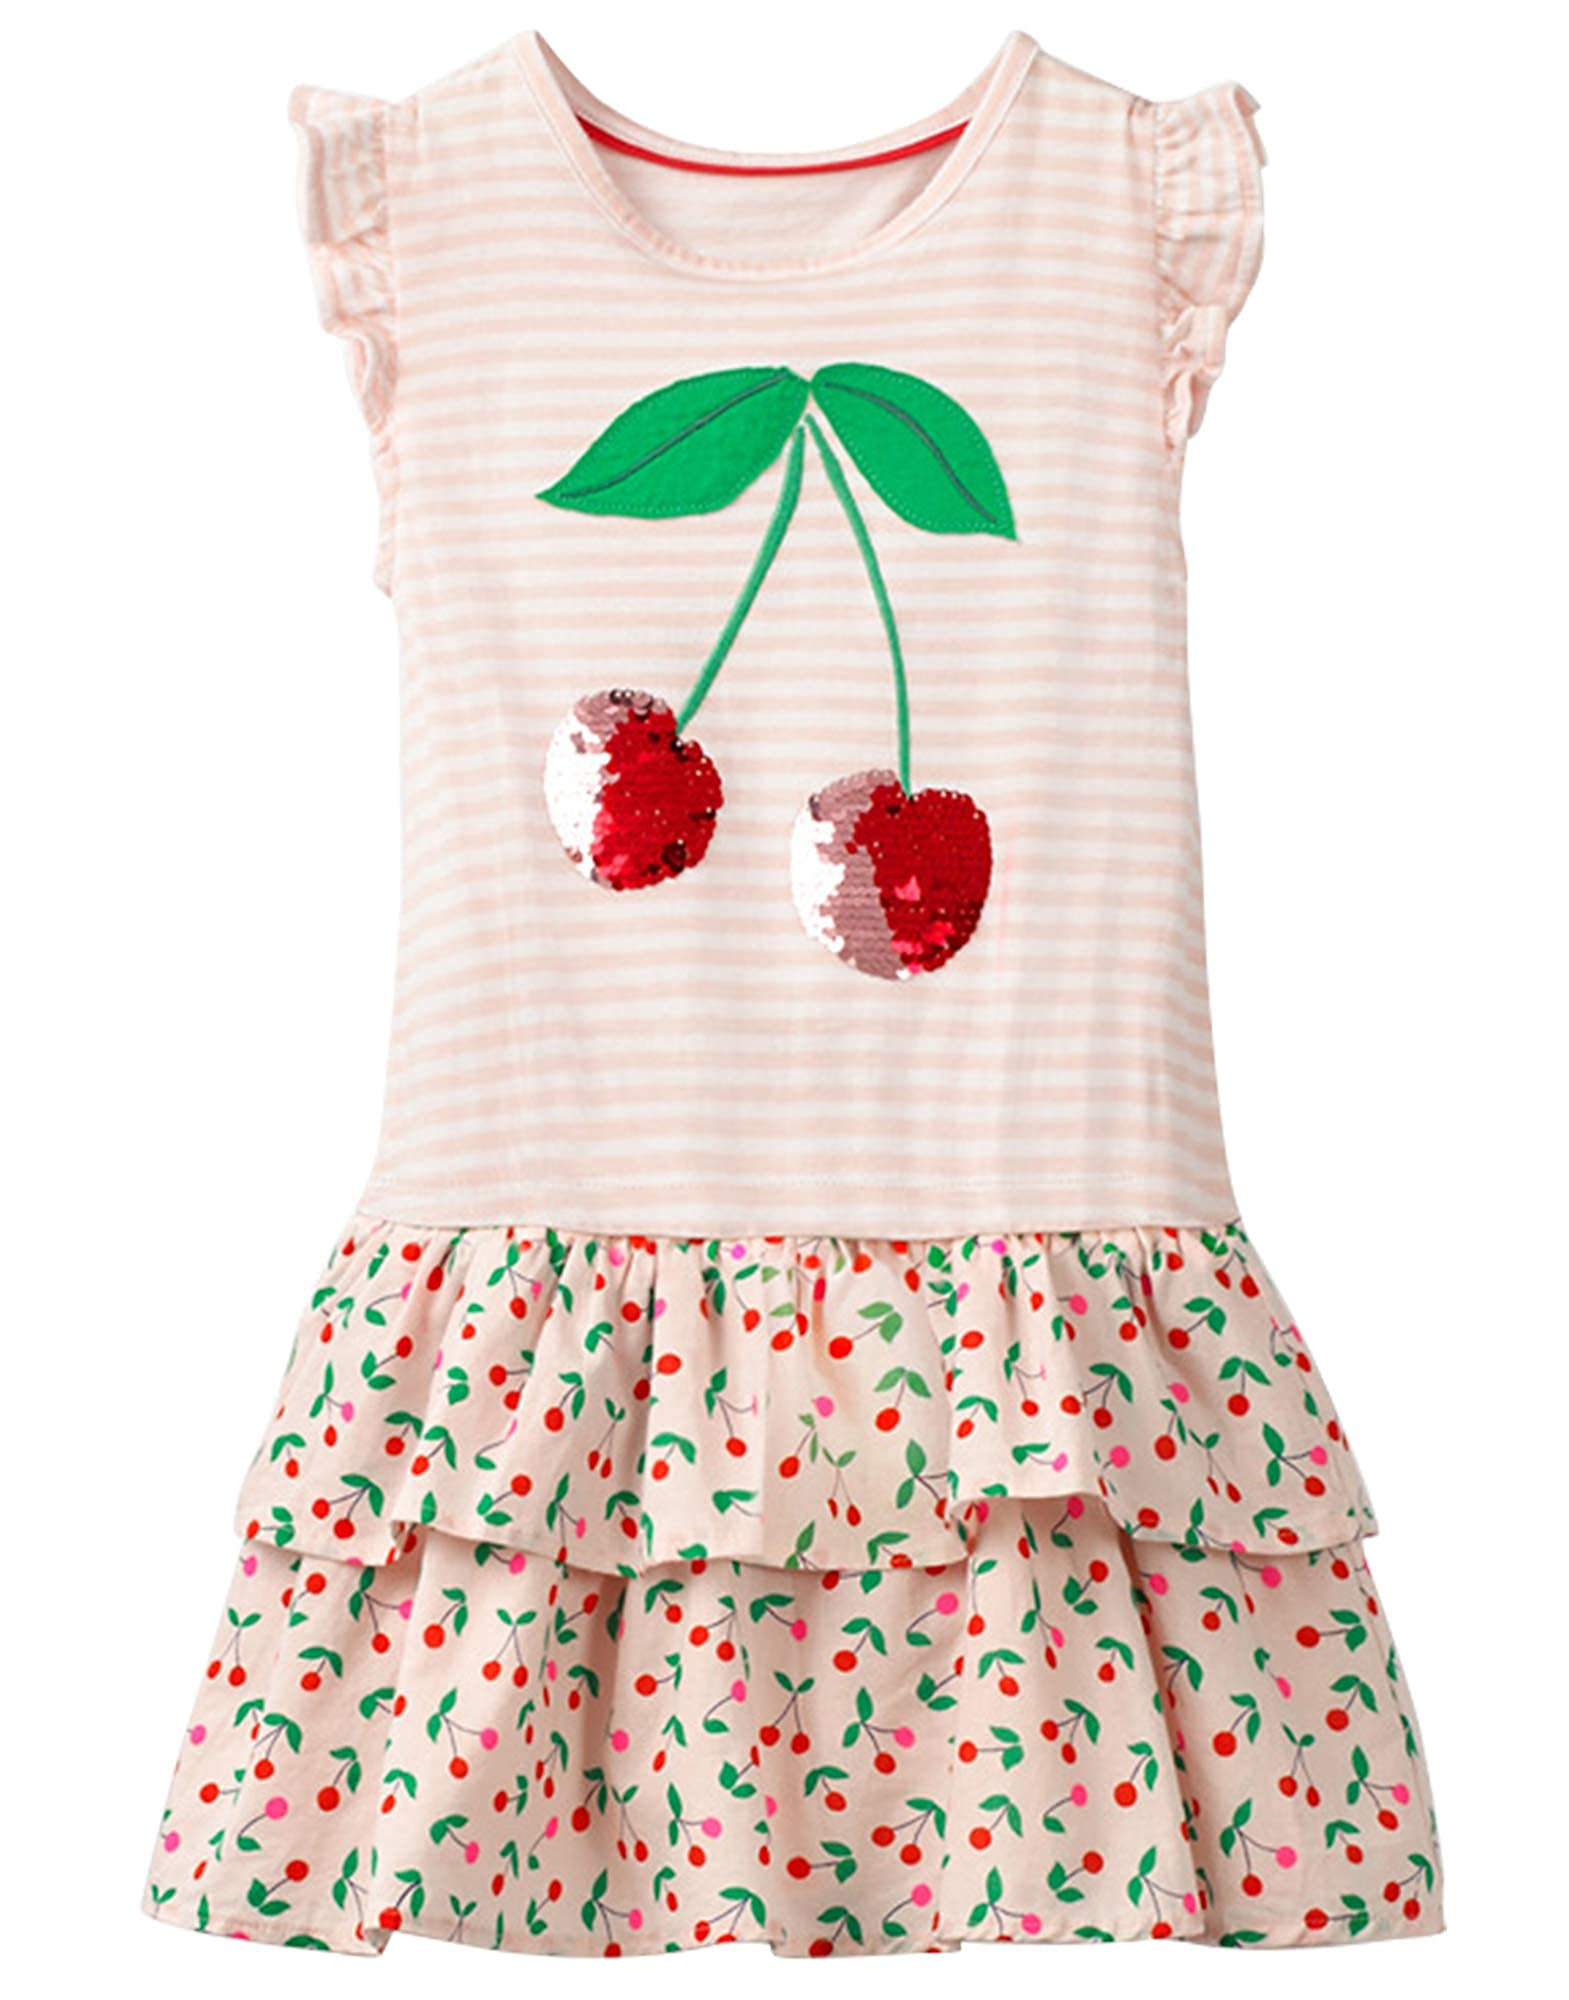 Cute Printed Cotton Dress For Girls